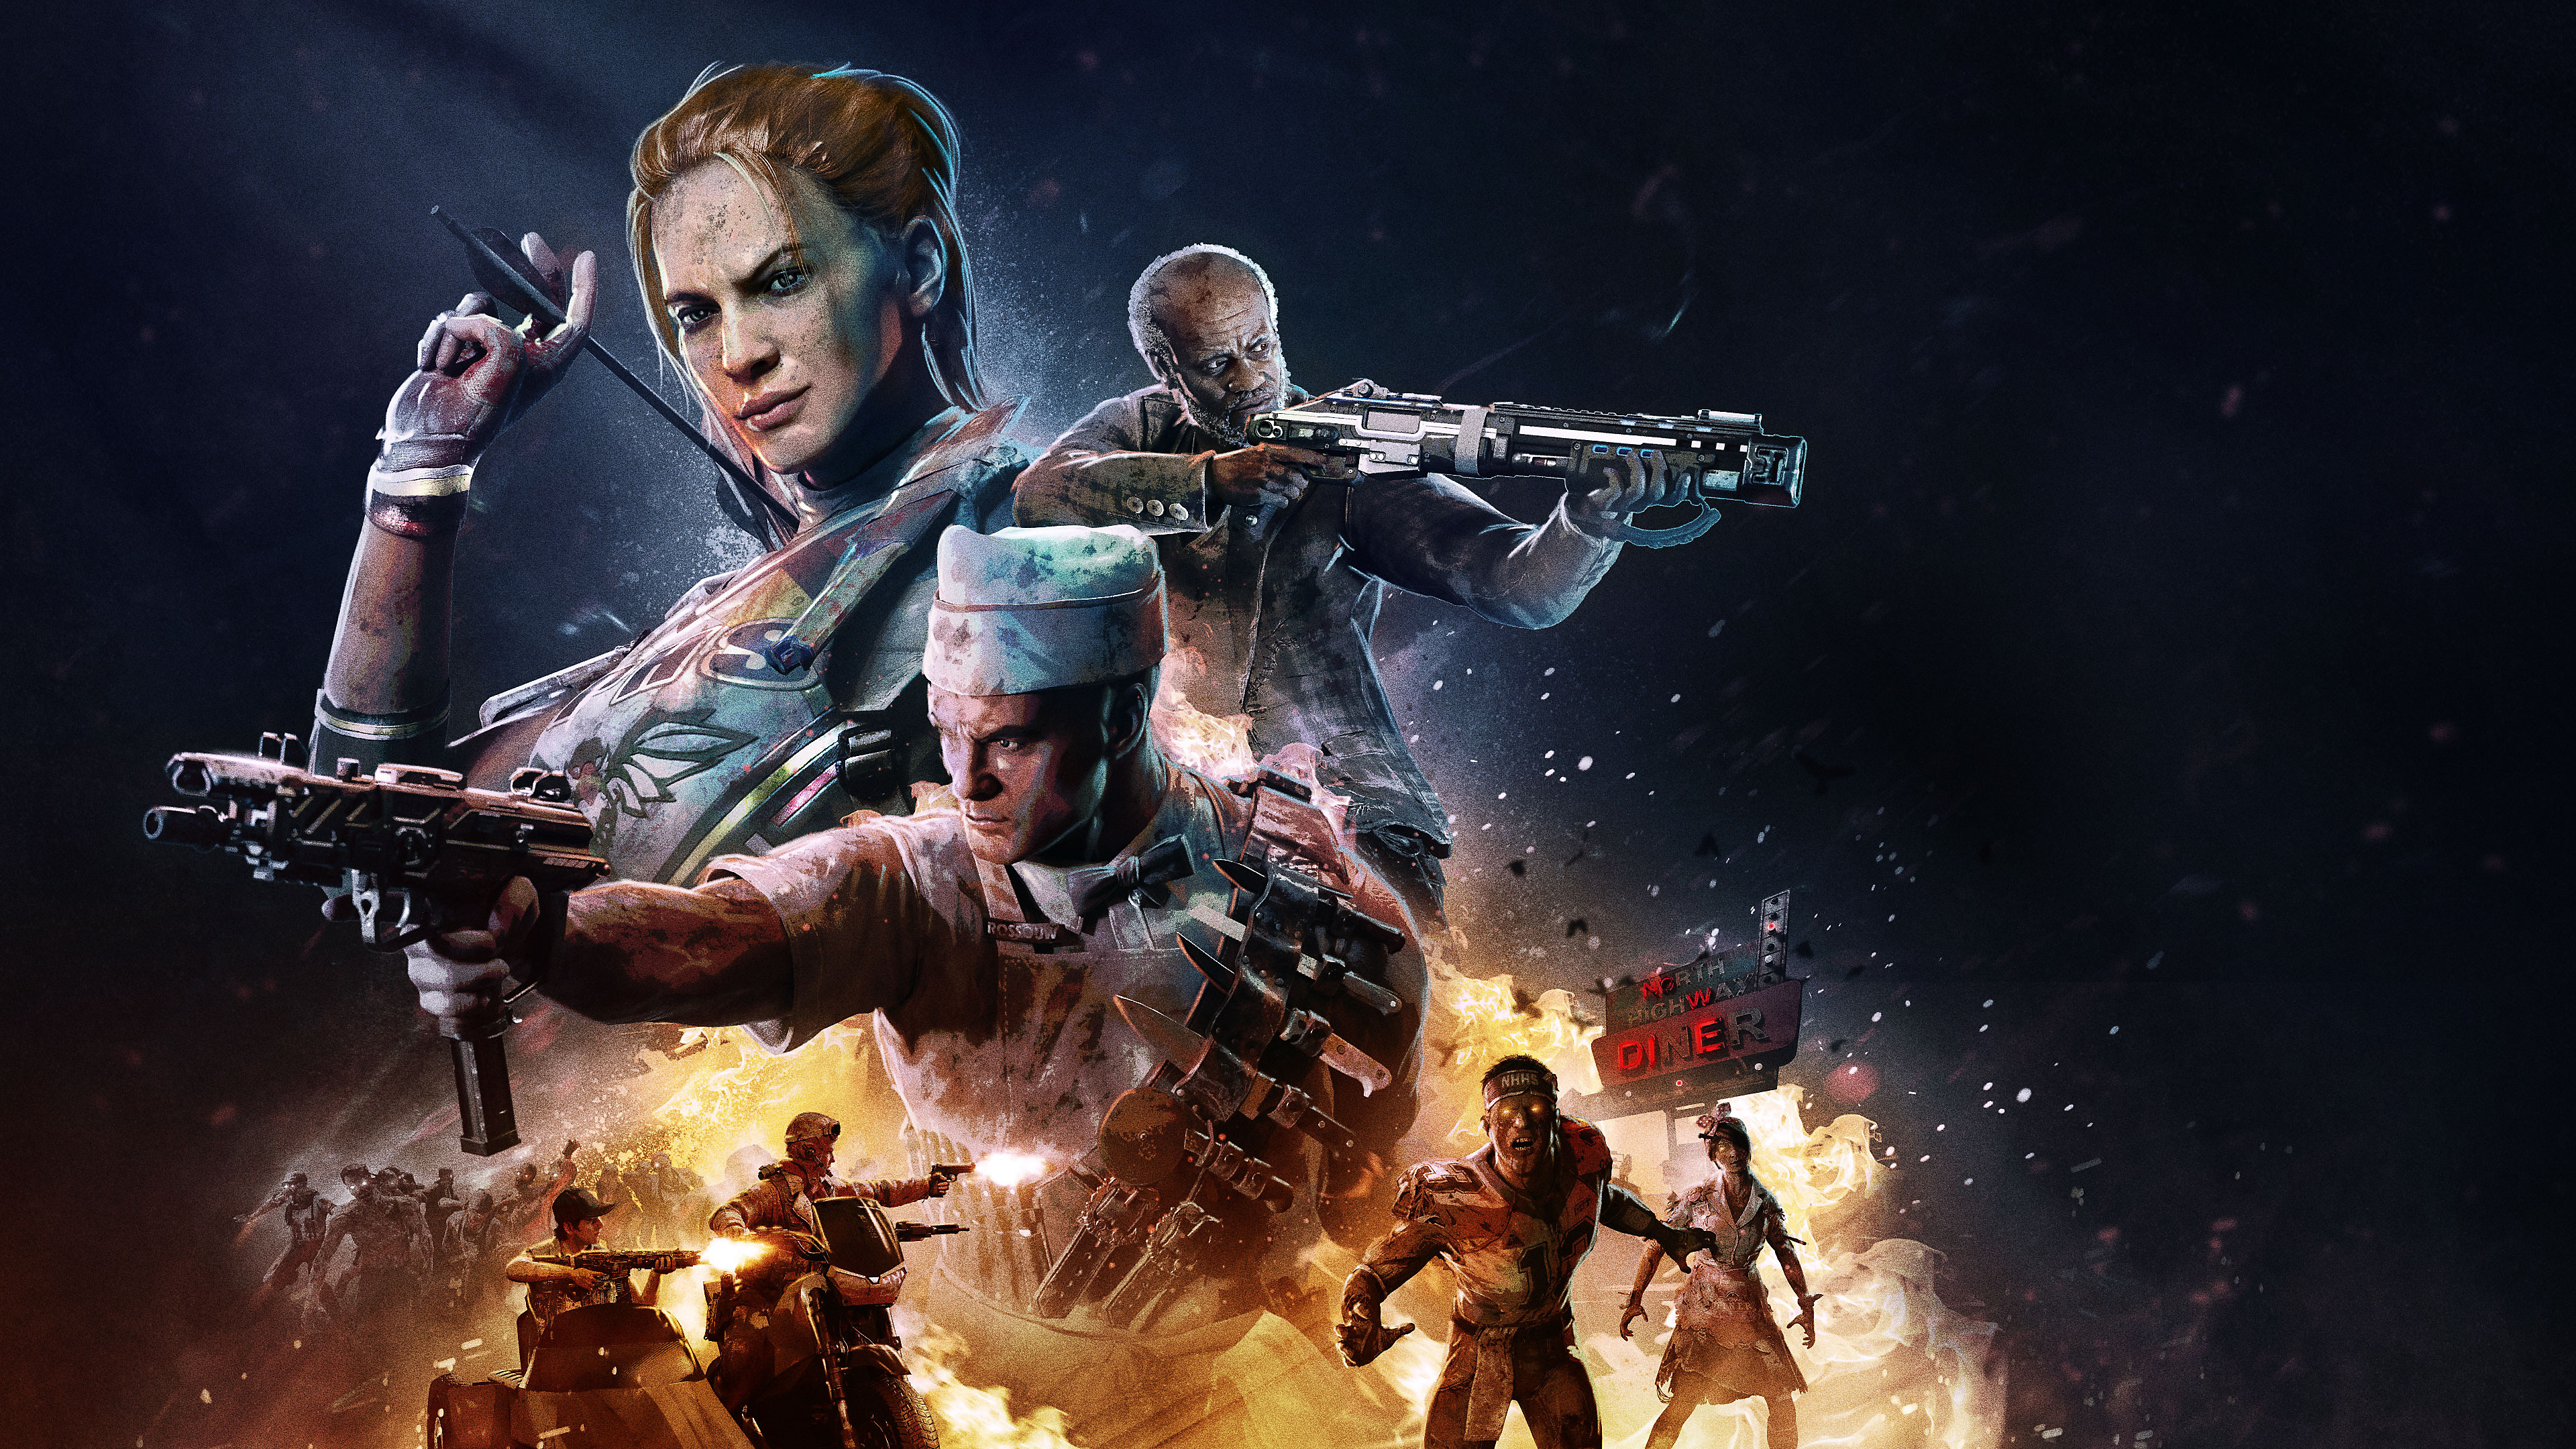 Call Of Duty Black Ops 4 4k Ultra Hd Wallpaper Background Image